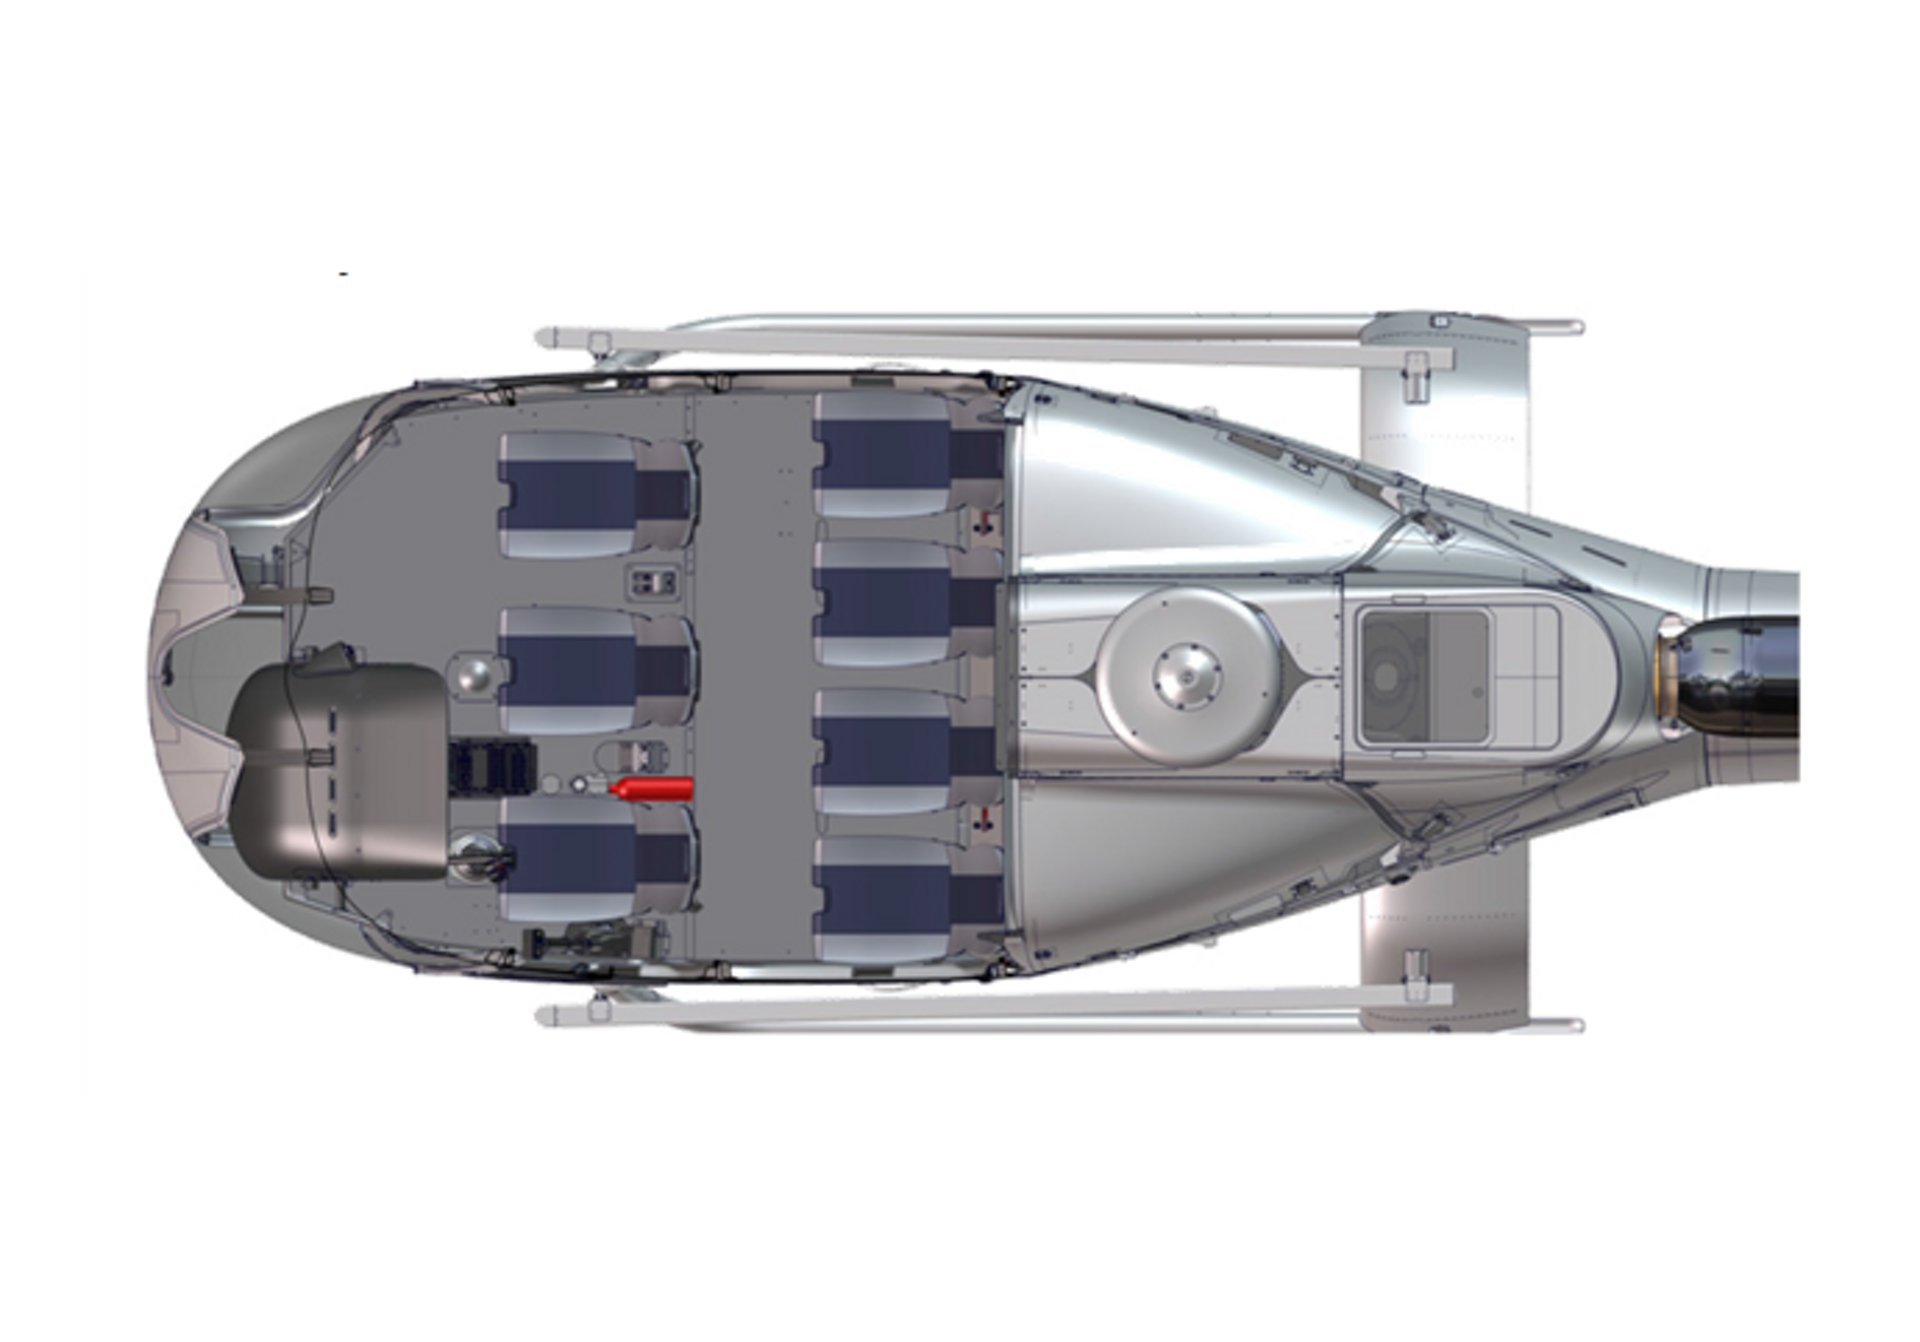 An Airbus H130 helicopter cabin configuration with six seats for passenger transport